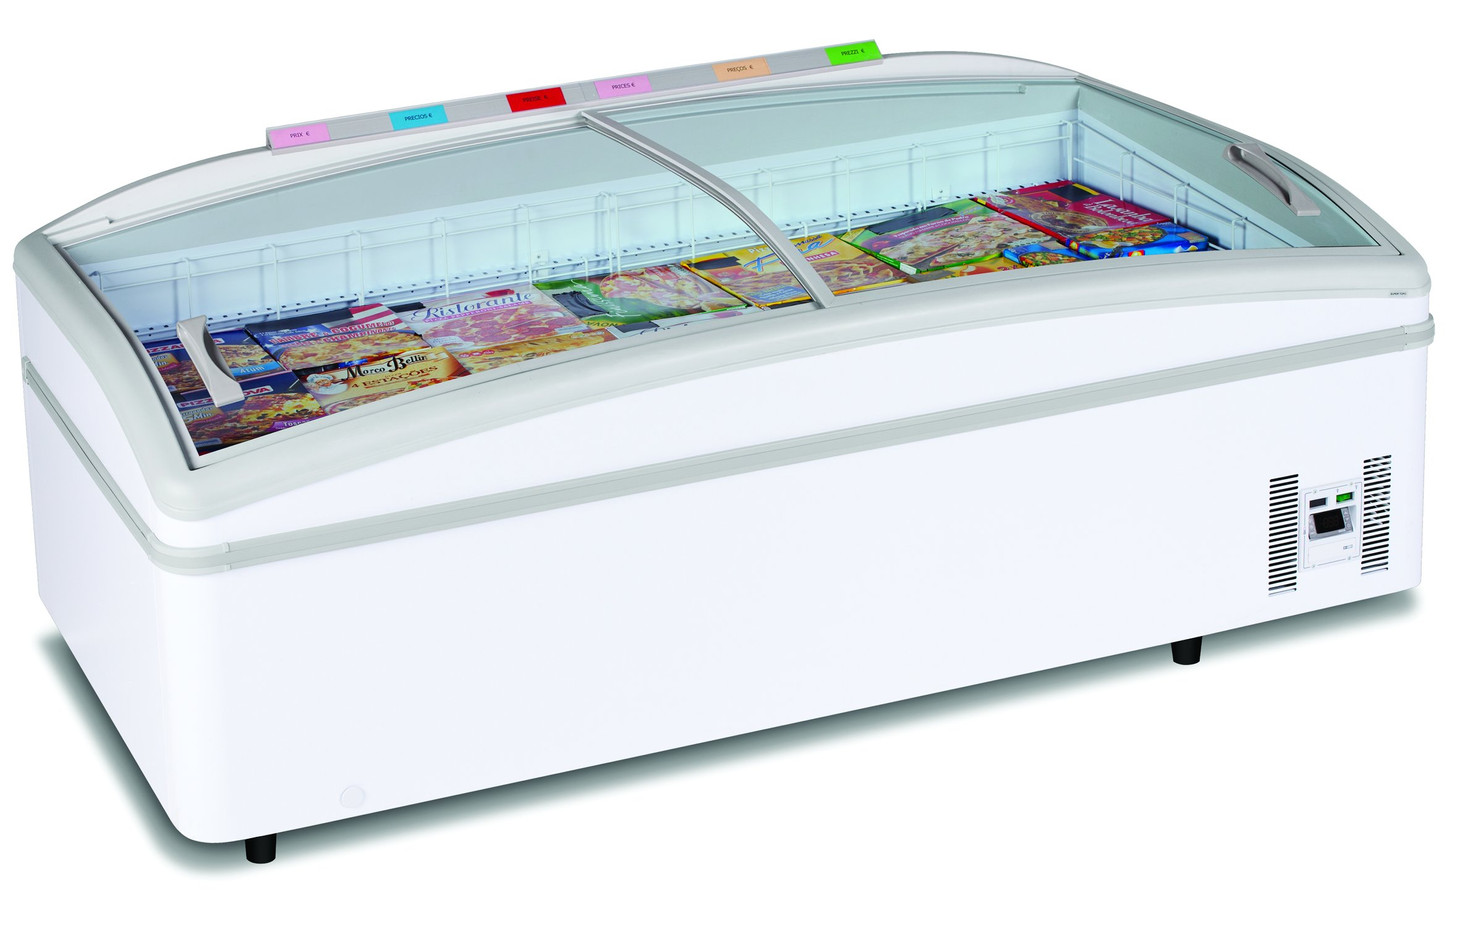 EXPOSITOR CONG.PROF. PANORAMA 2 150 TL